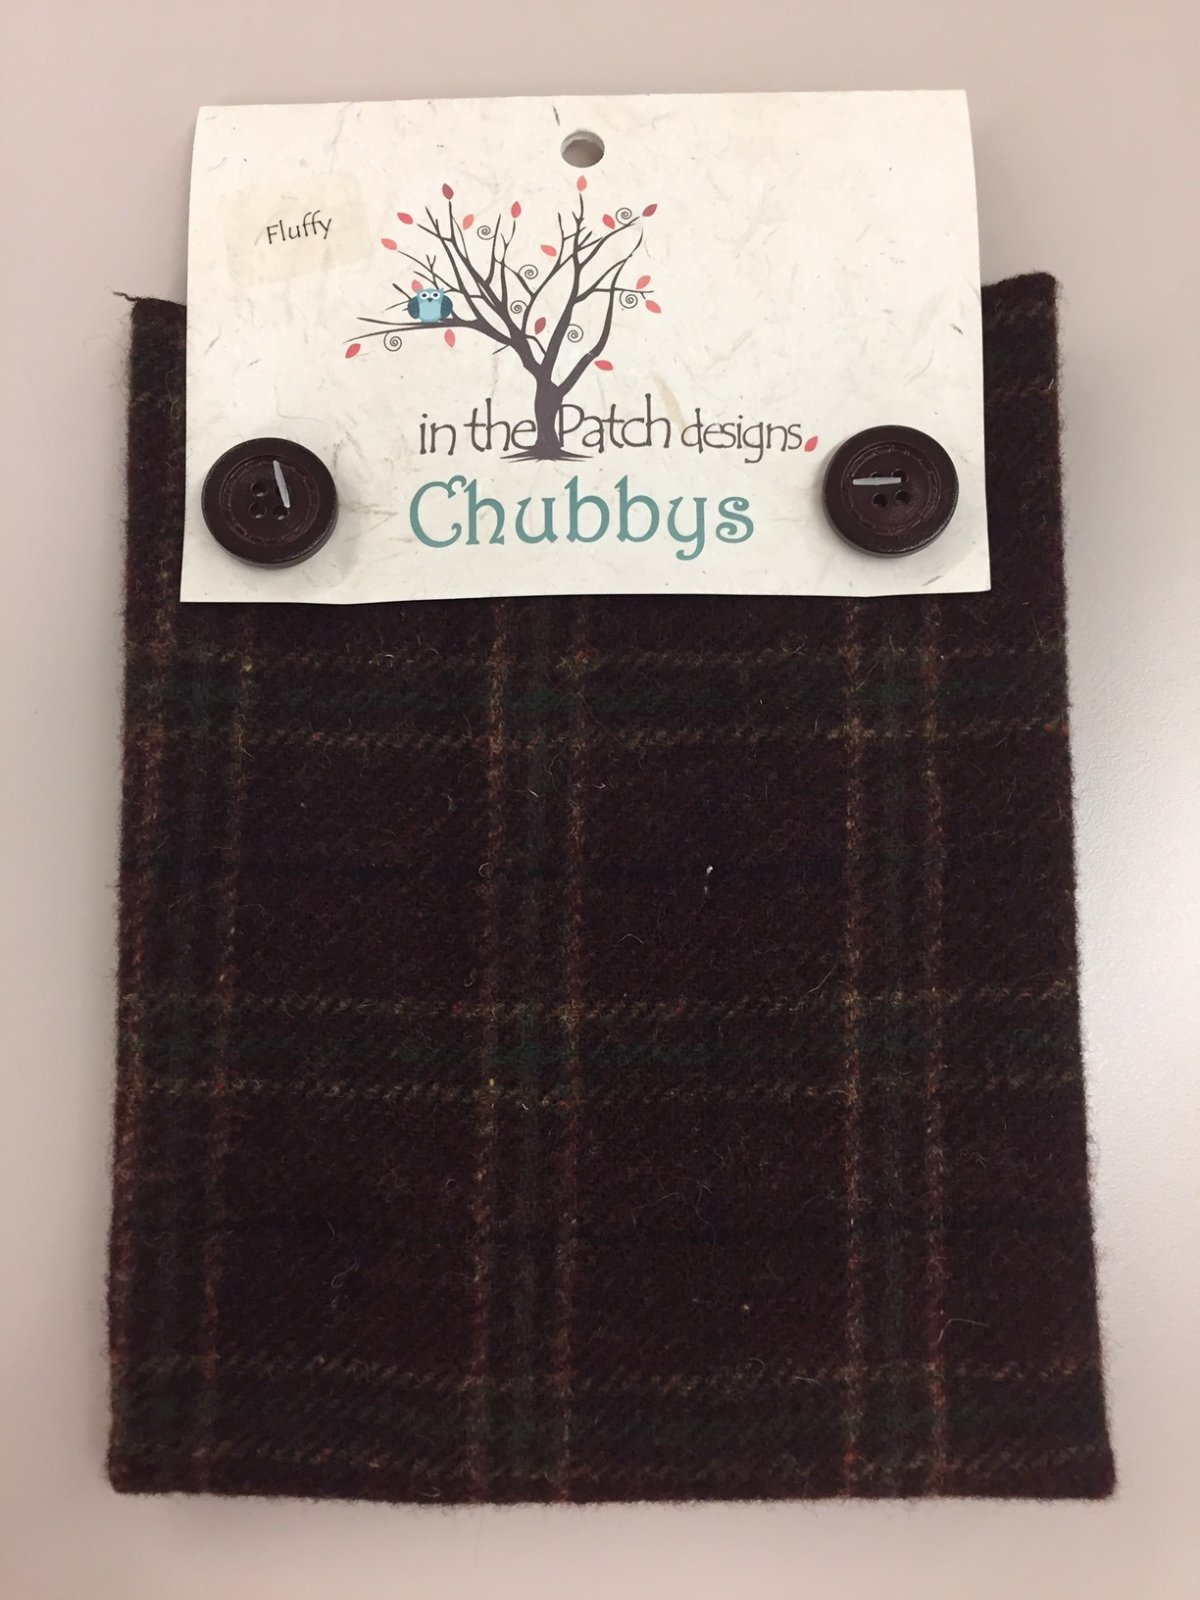 Bordeaux-Fluffy (Chubby) by In the Patch Designs